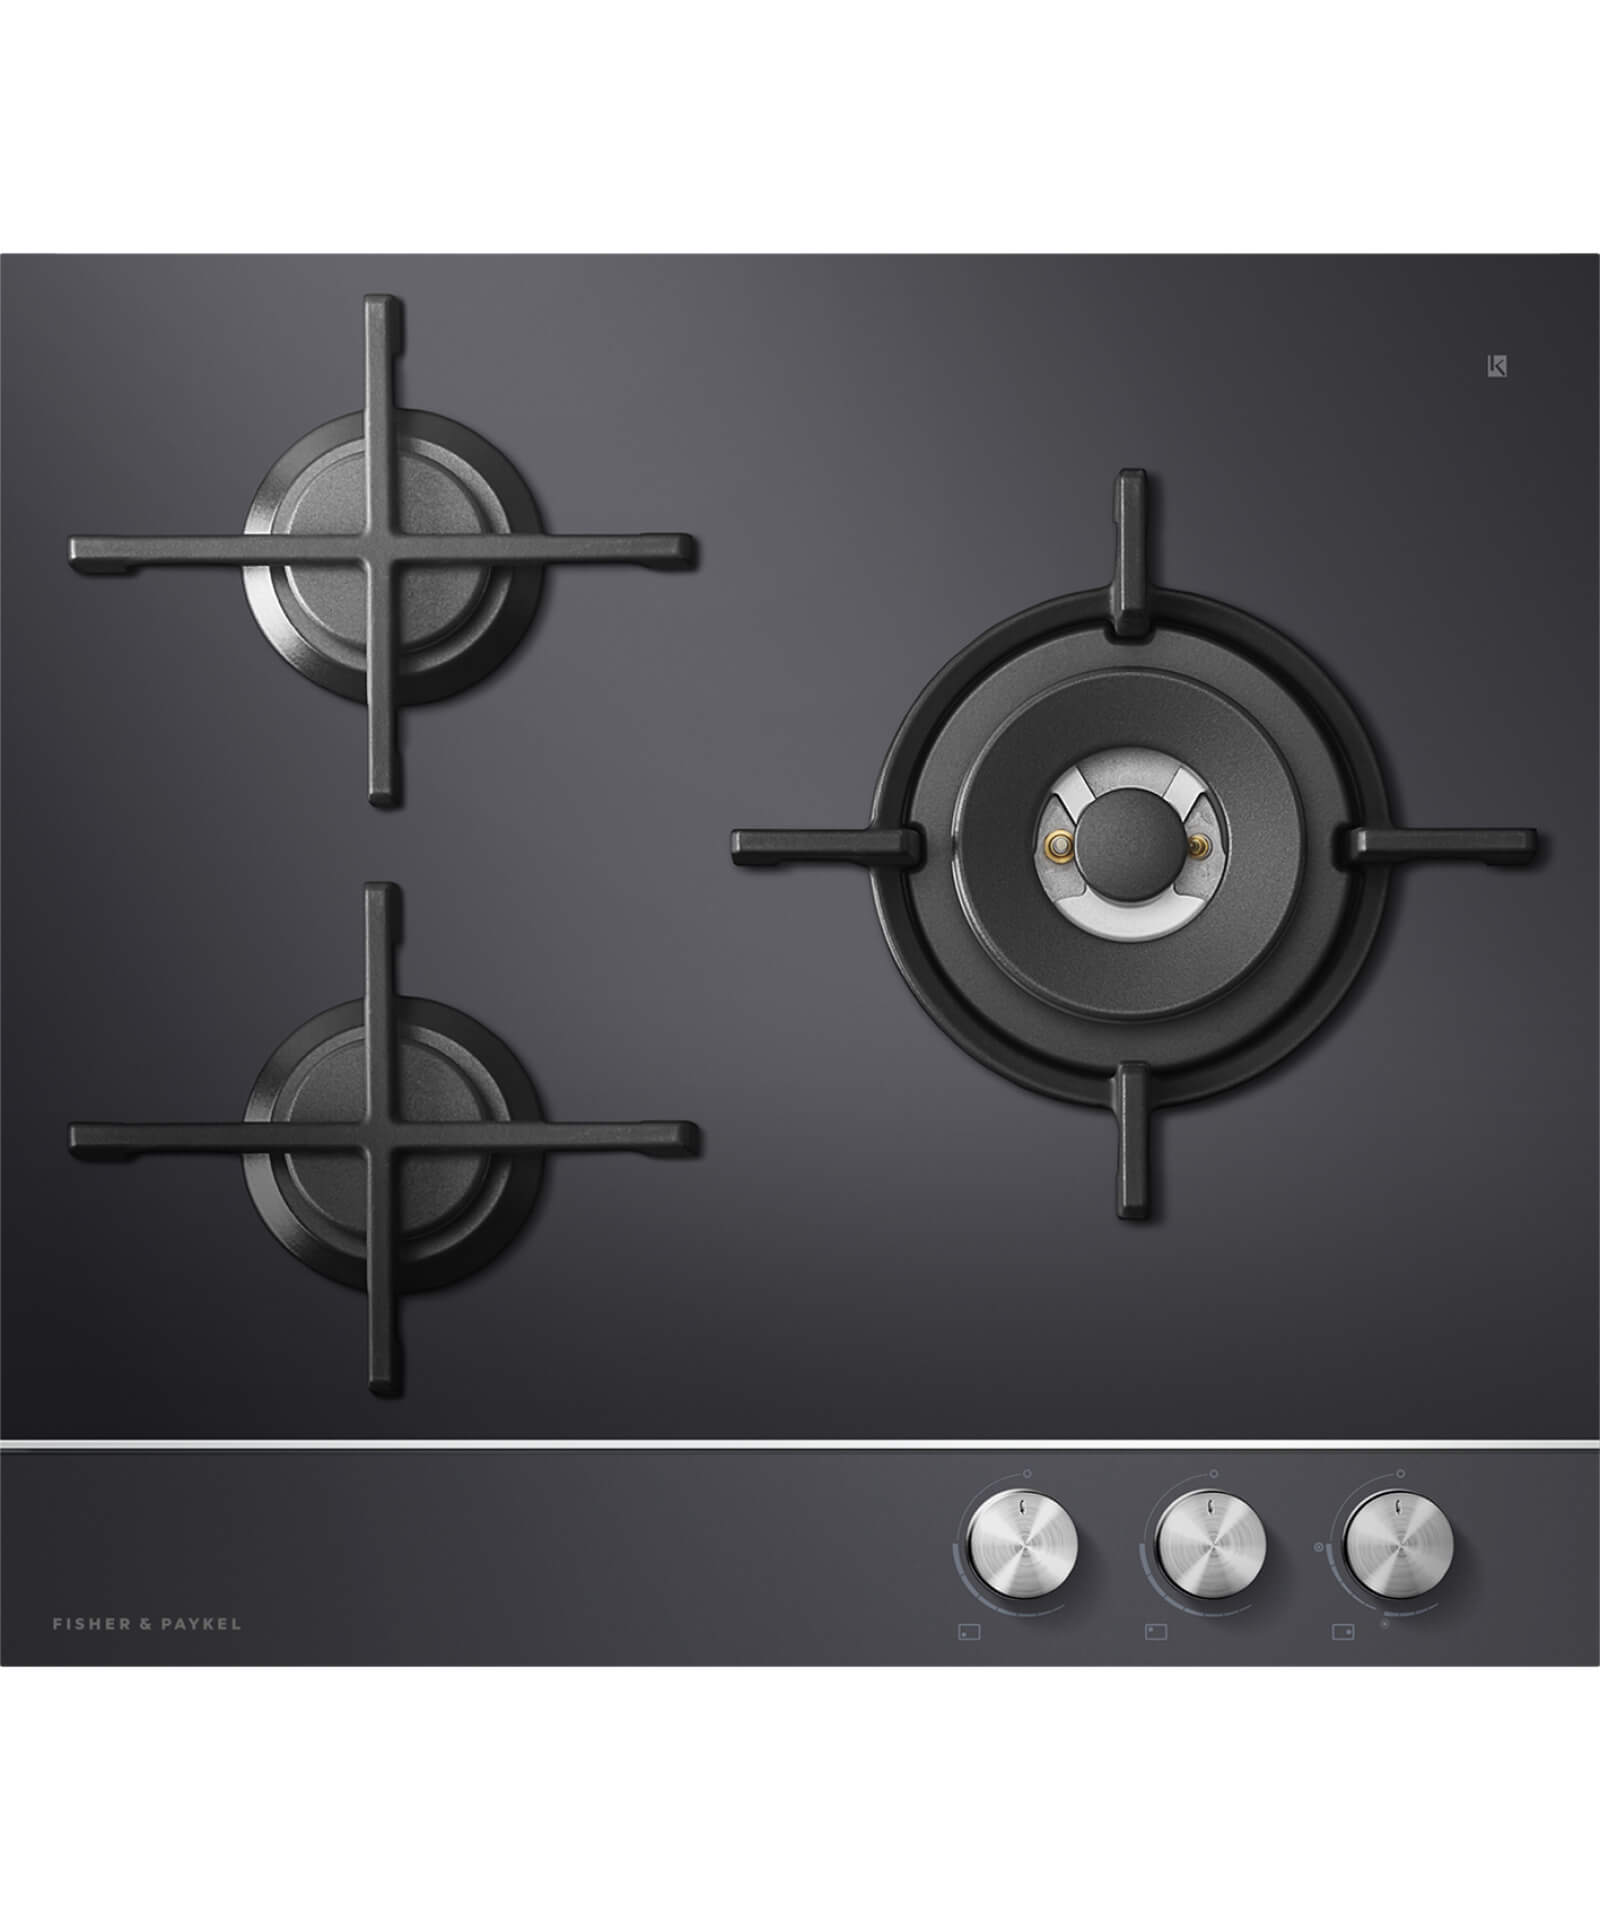 CG603DNGGB1   60cm Gas On Glass Cooktop   80951